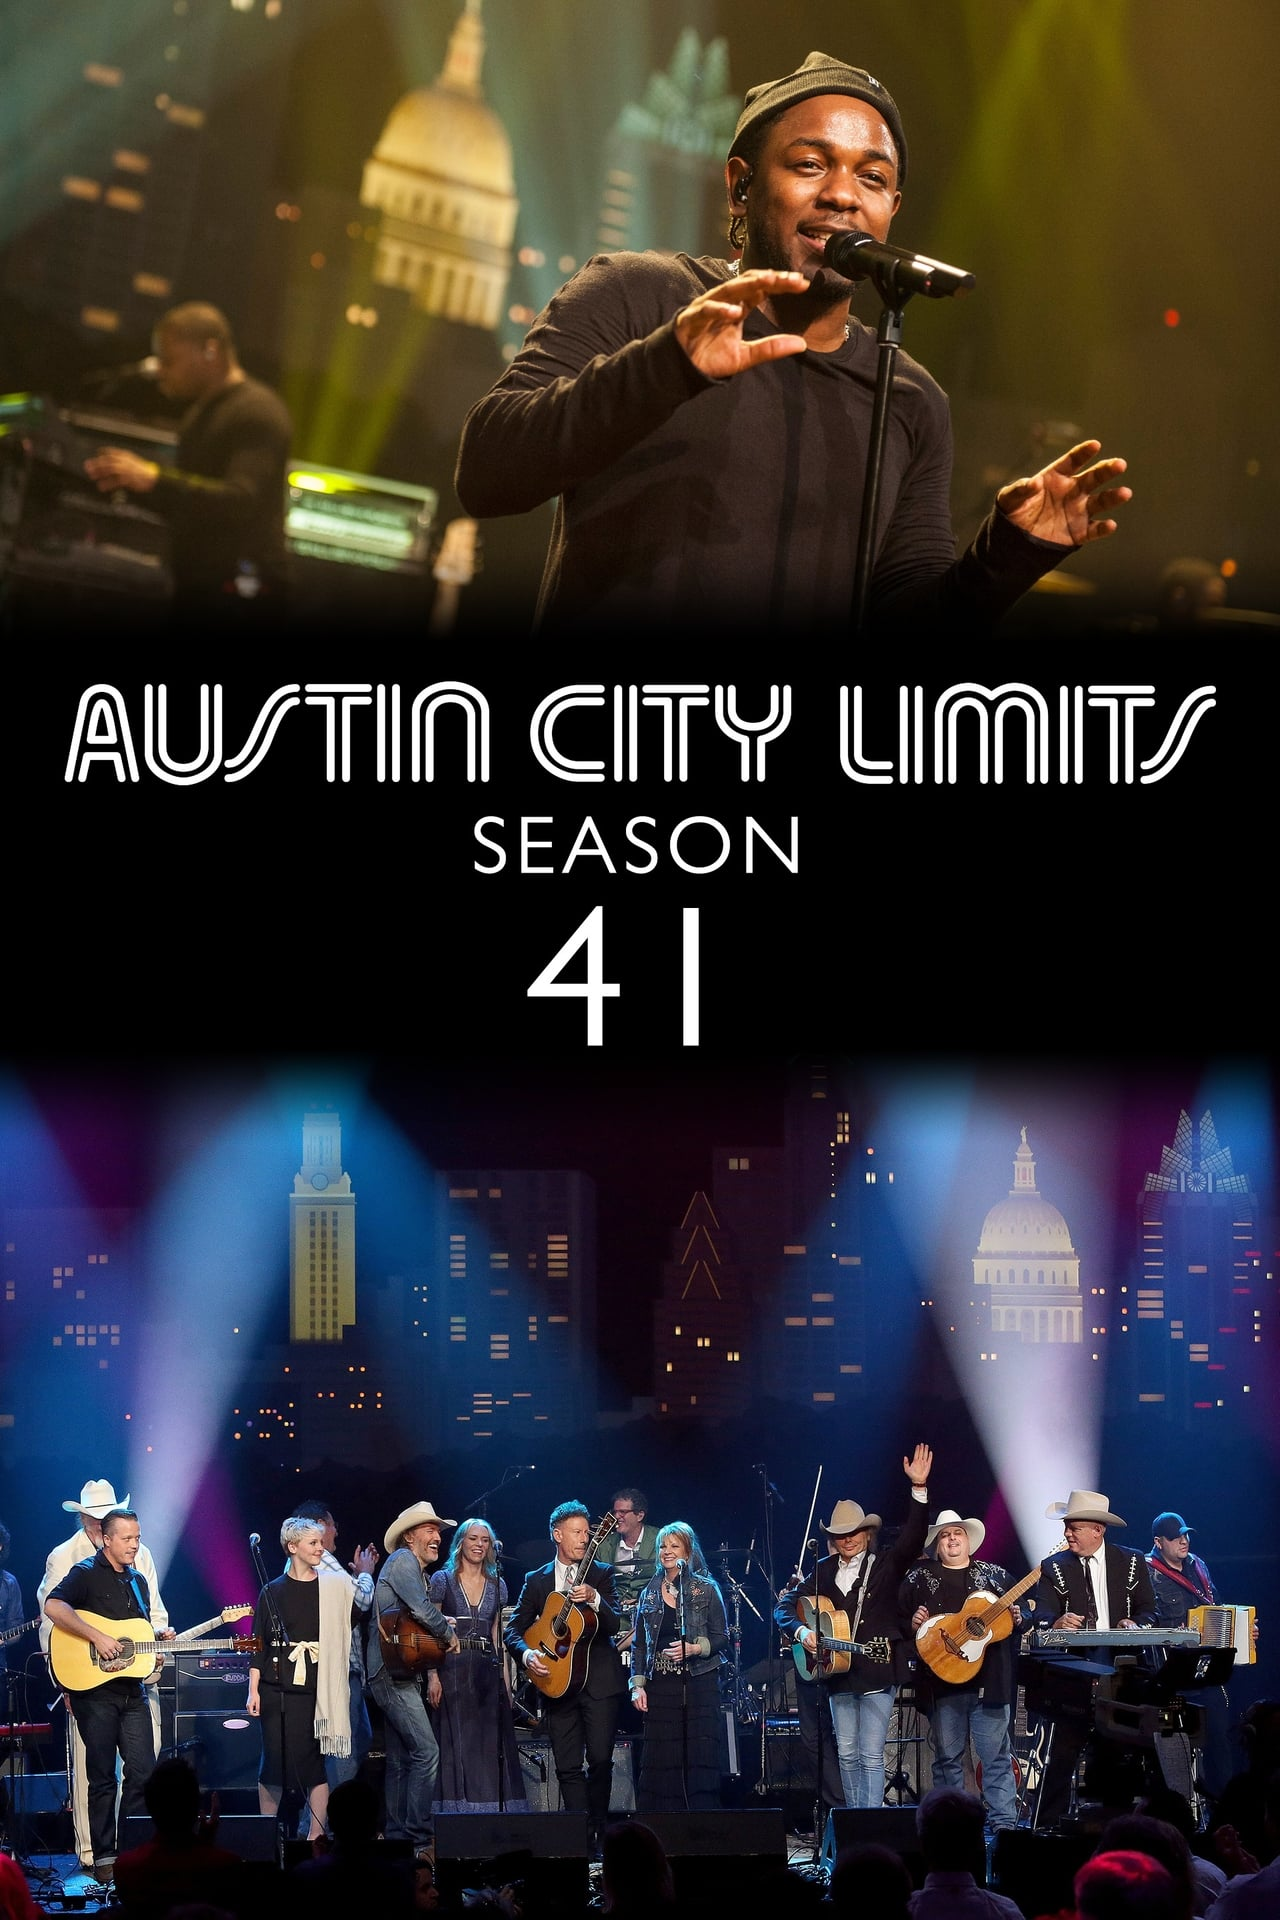 Austin City Limits Season 41